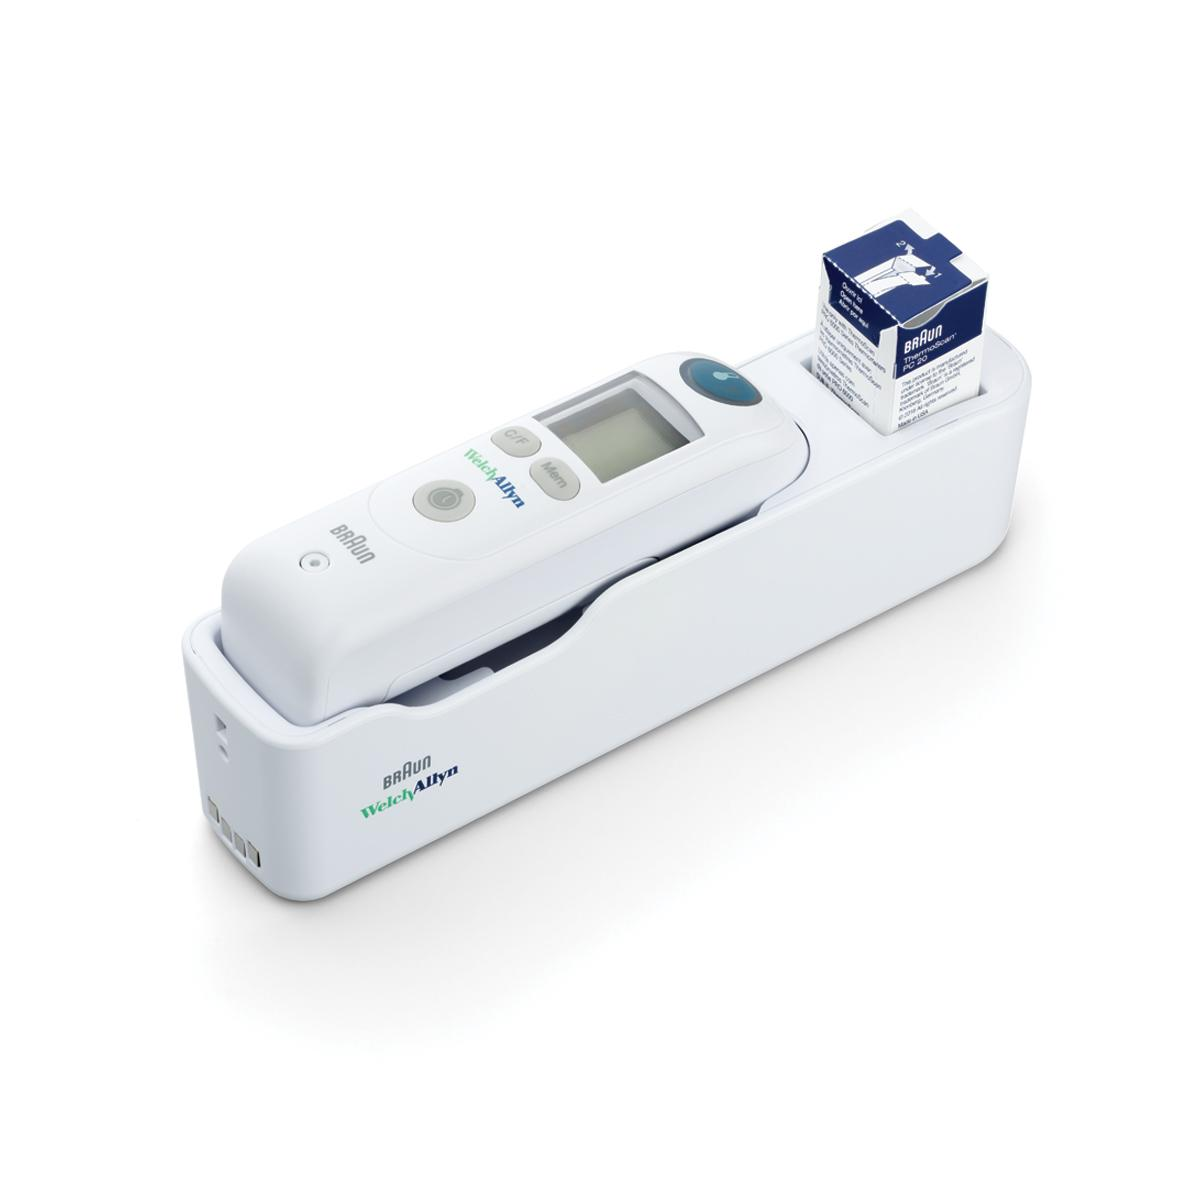 Braun ThermoScan PRO 6000 Ear Thermometer in cradle with box of probe covers, 3/4 view, right side